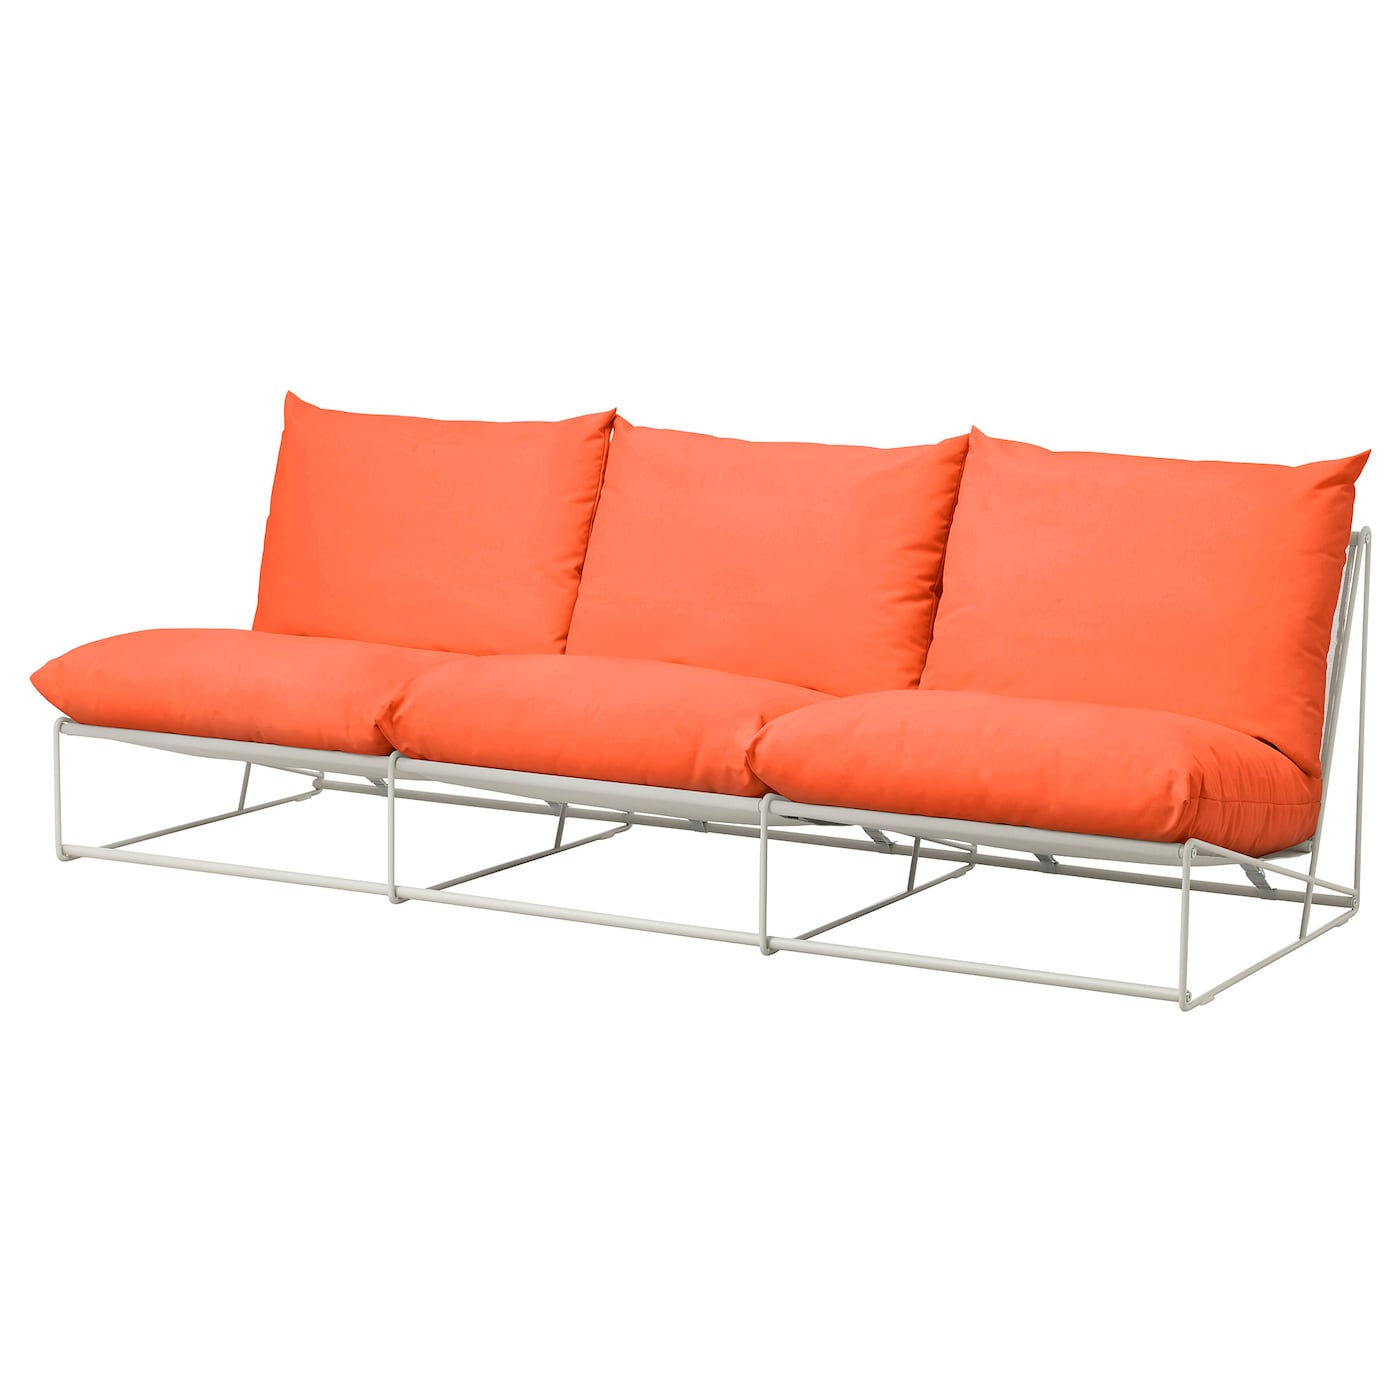 IKEA HAVSTEN 3-seat sofa, in/outdoor